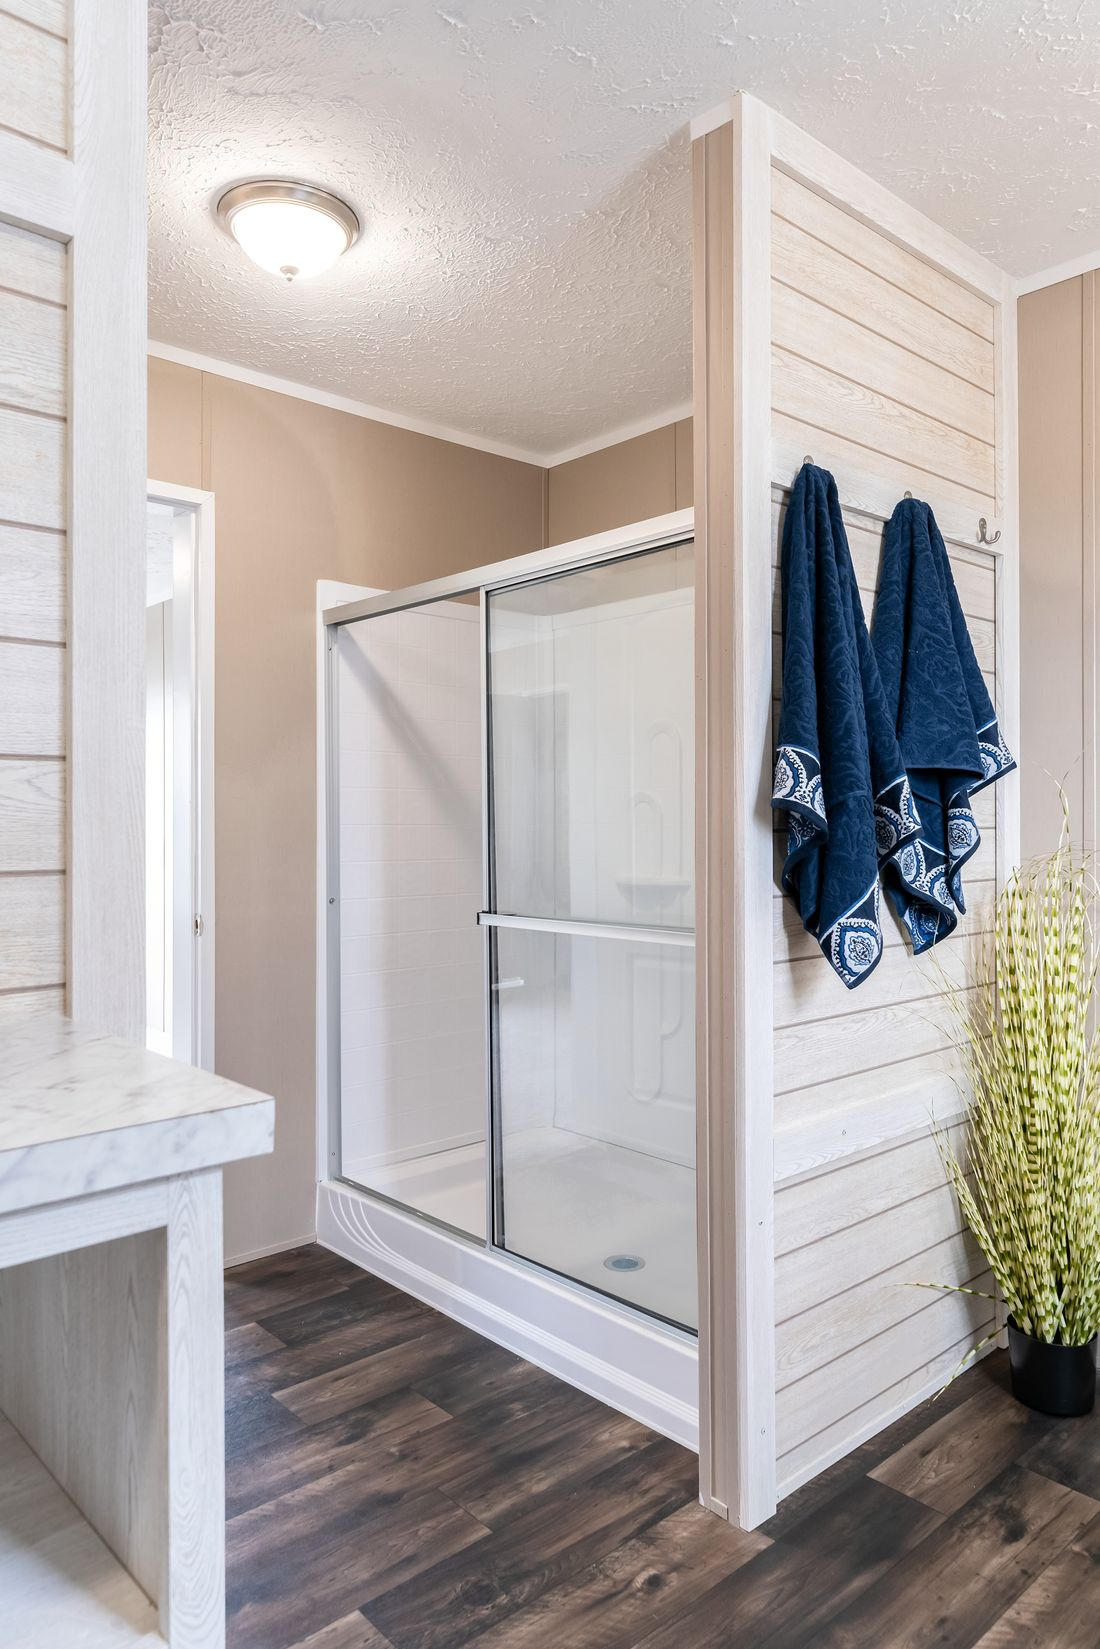 The ISLAND BREEZE Master Bathroom. This Manufactured Mobile Home features 3 bedrooms and 2 baths.